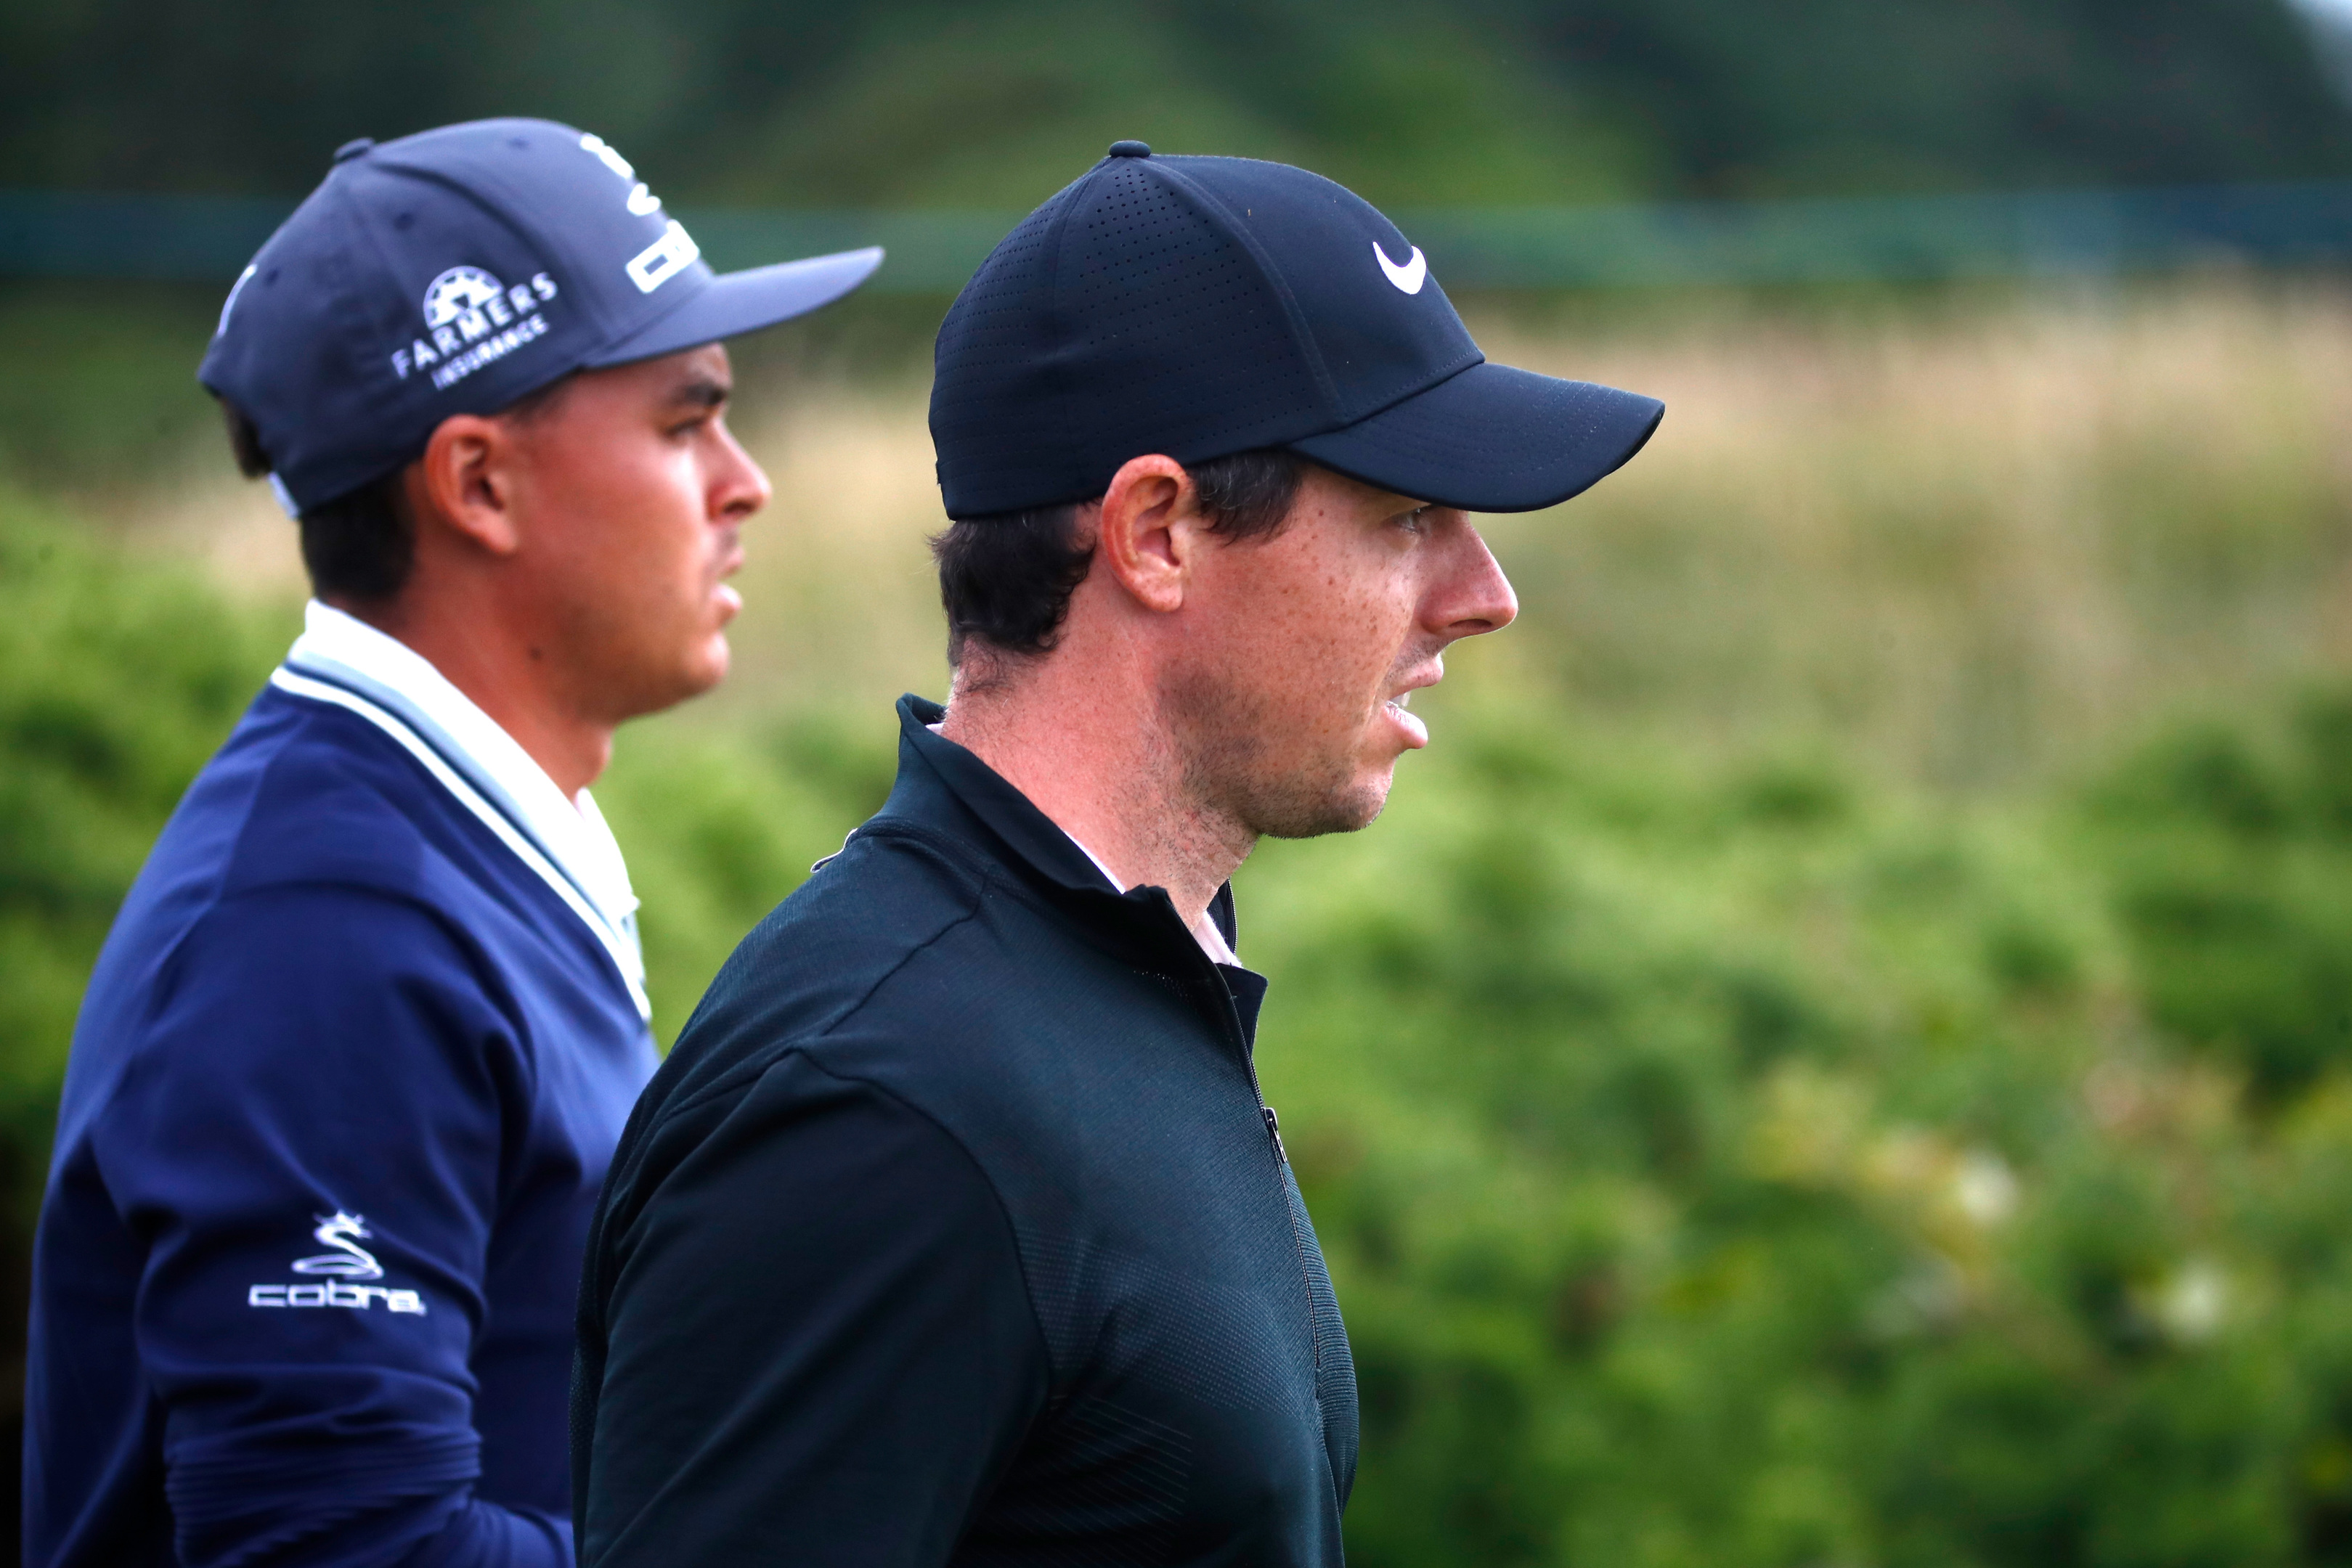 Rickie Fowler (left) prospered as Rory McIlroy struggled on the opening day of the AAM Scottish Open.